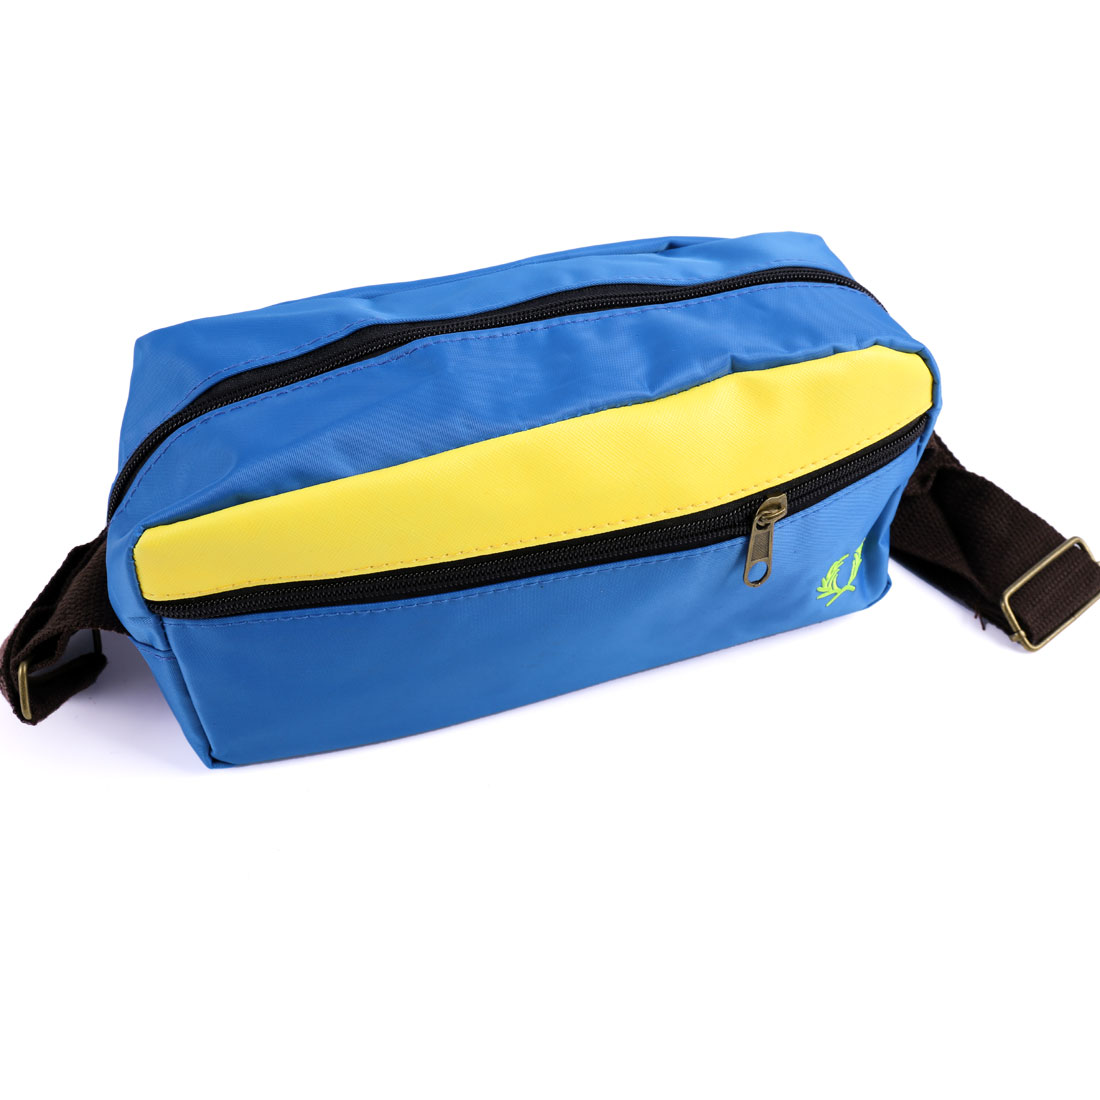 Men Buckle Strap Pouch Pocket Lining Waist Bag Royal Blue Yellow